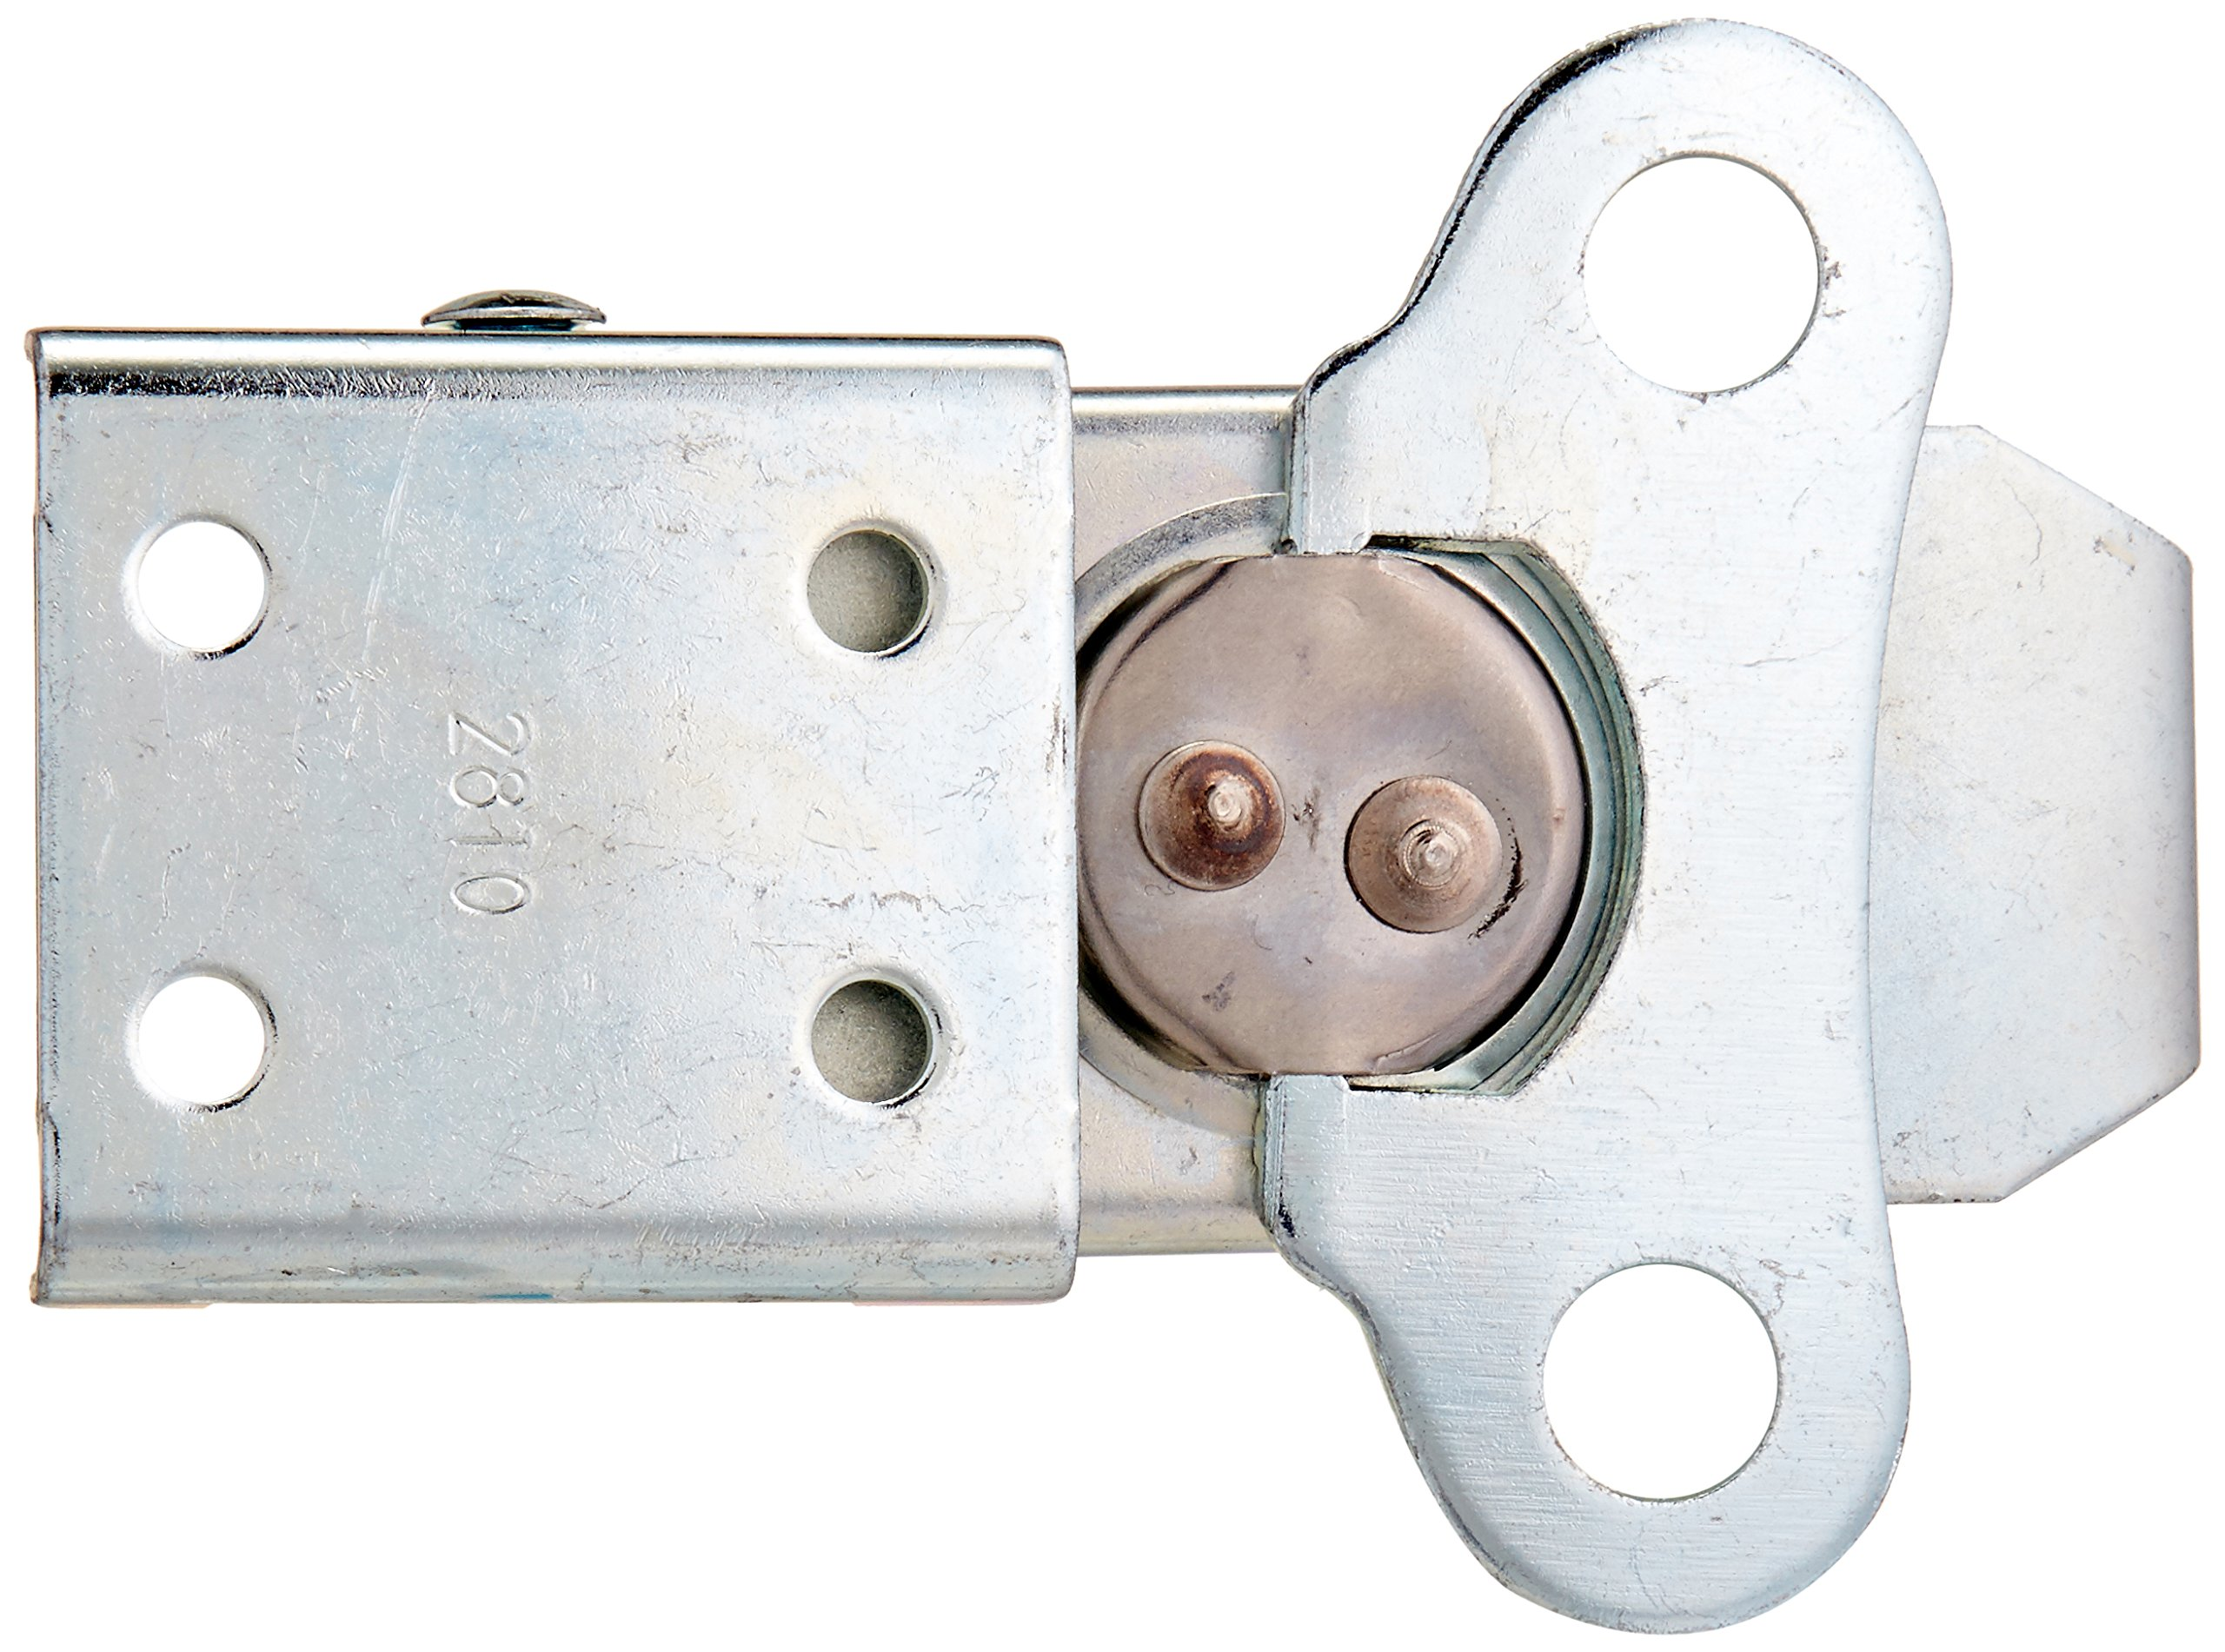 Southco Inc K5-2587-07 Rotary-Action Draw Latch 3.43 Closed Length, 900 Lbs. Load Capacity